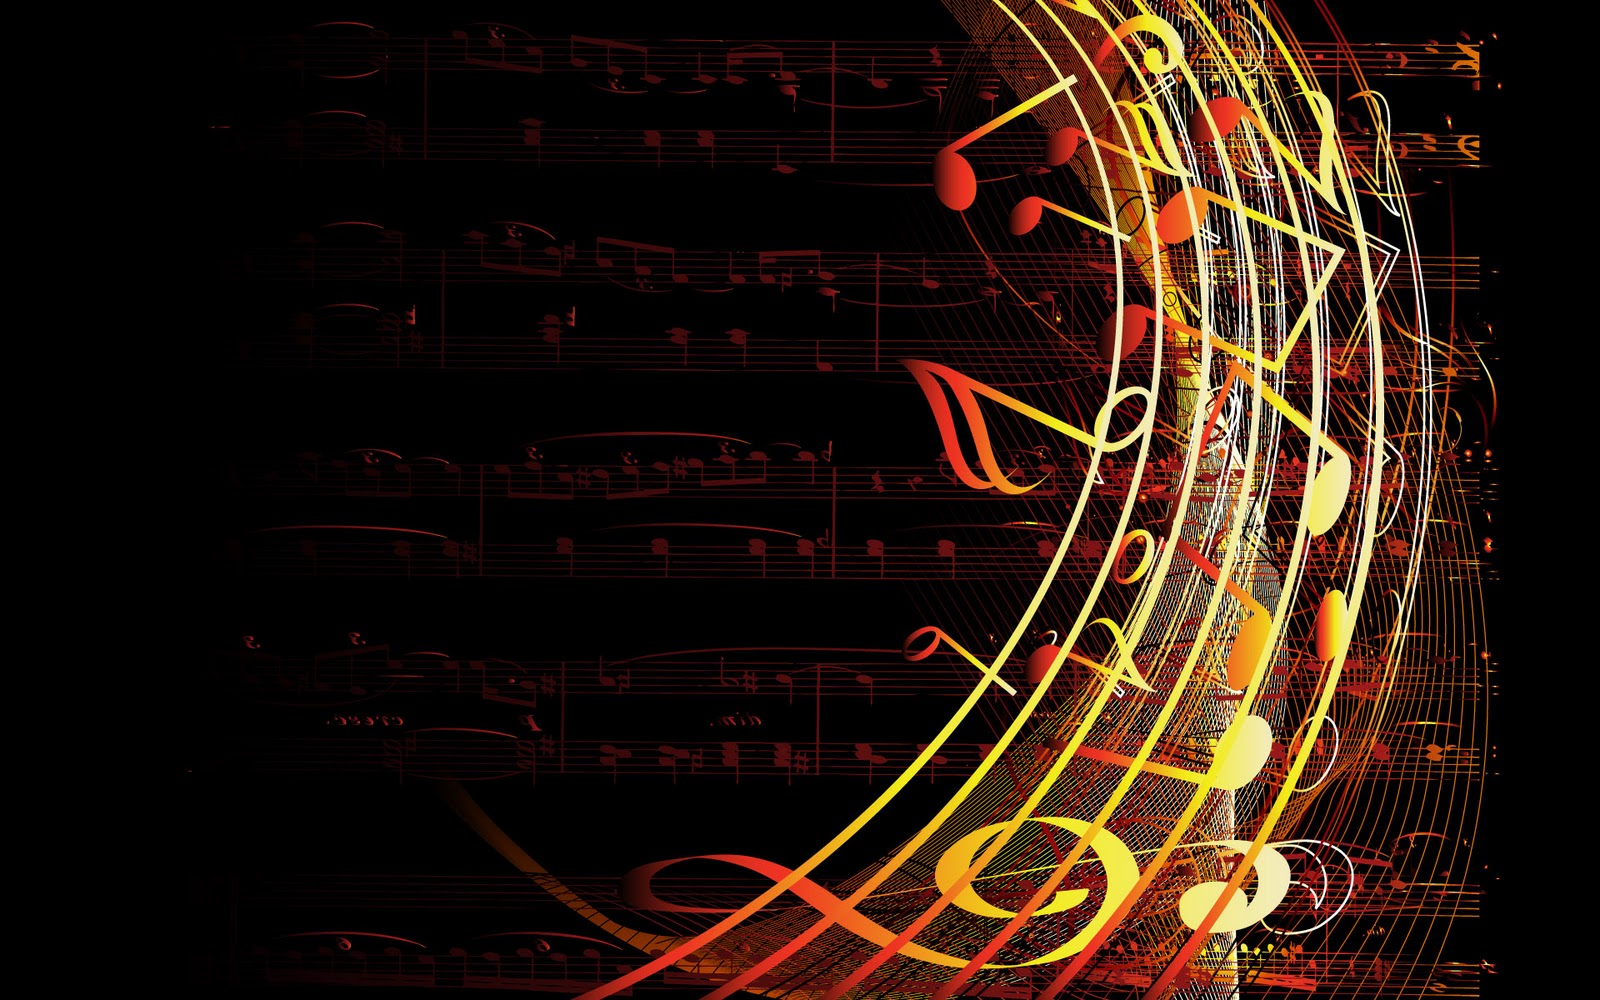 Related Wallpaper for Music Notes Wallpaper 1600x1000